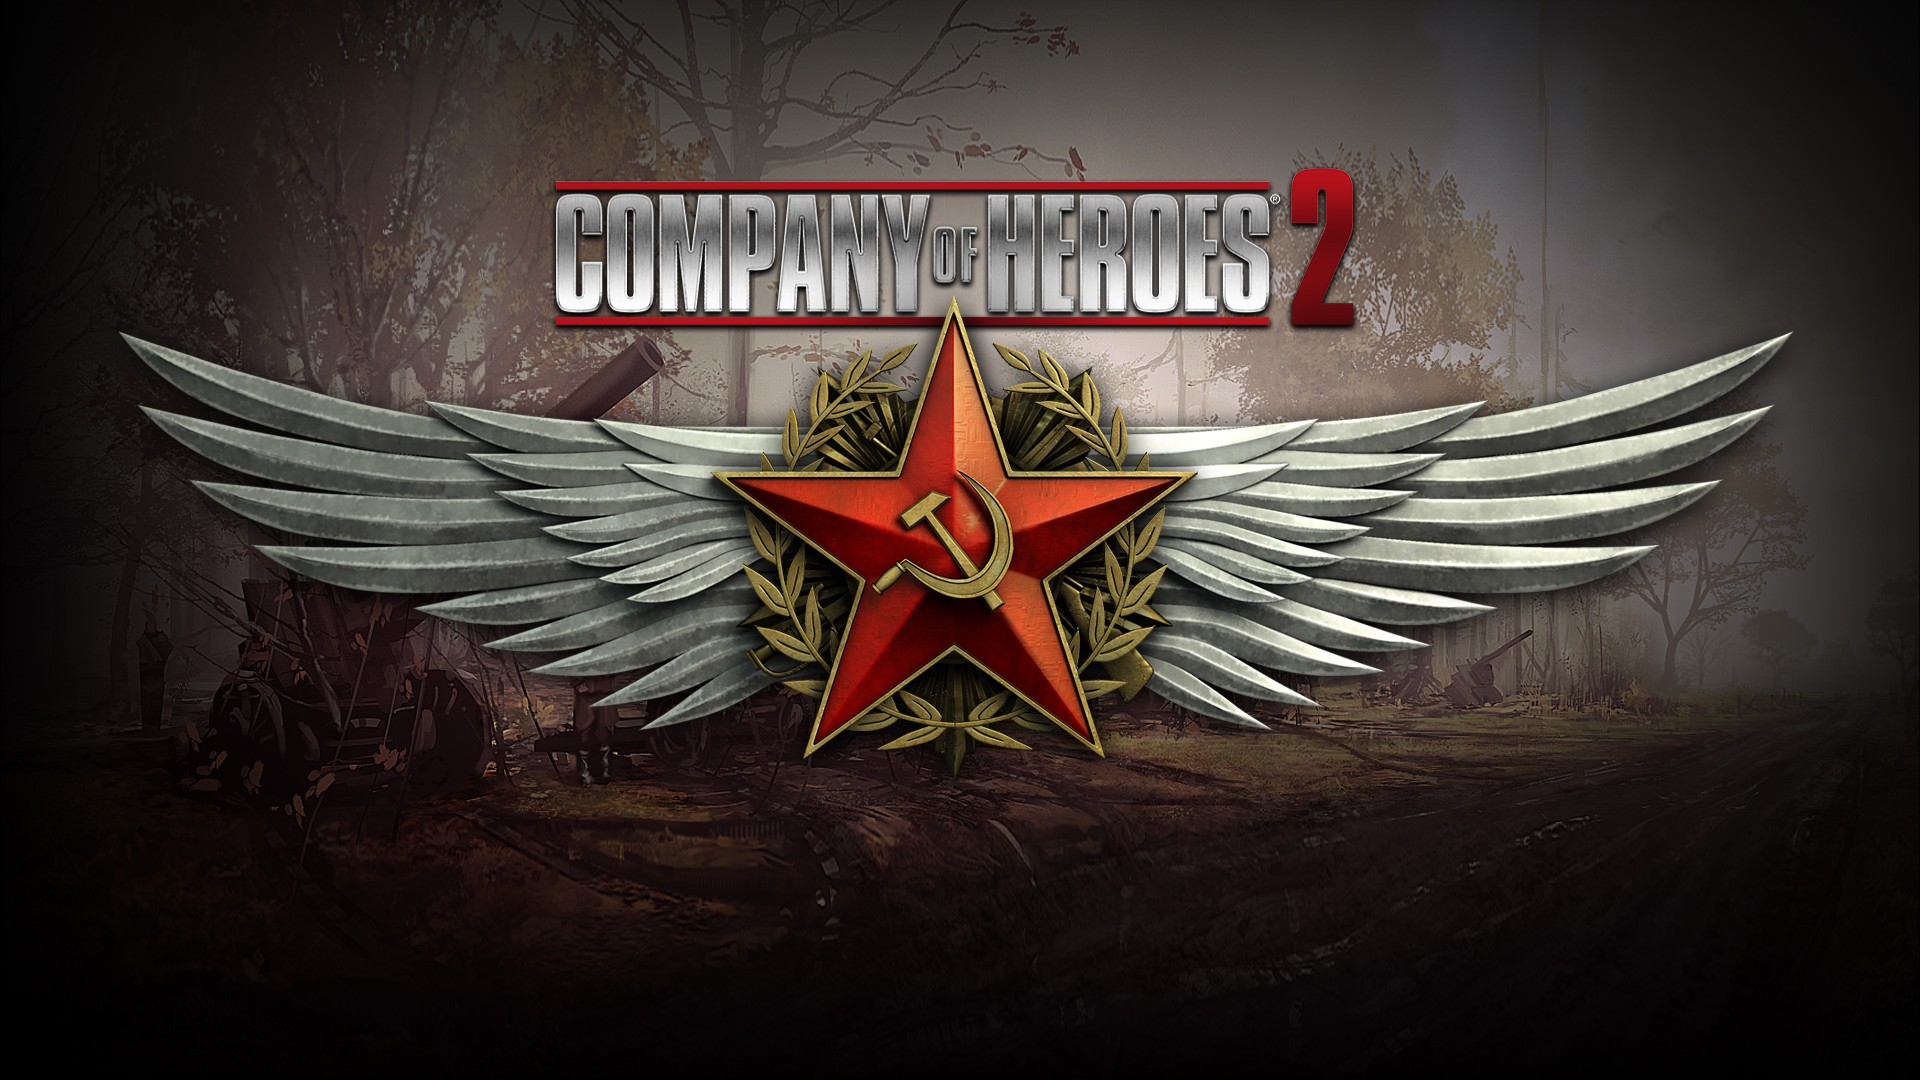 Company Of Heroes 2 Wallpaper Hd 10 Company Of Heroes 2 Hd Wallpapers Backgrounds